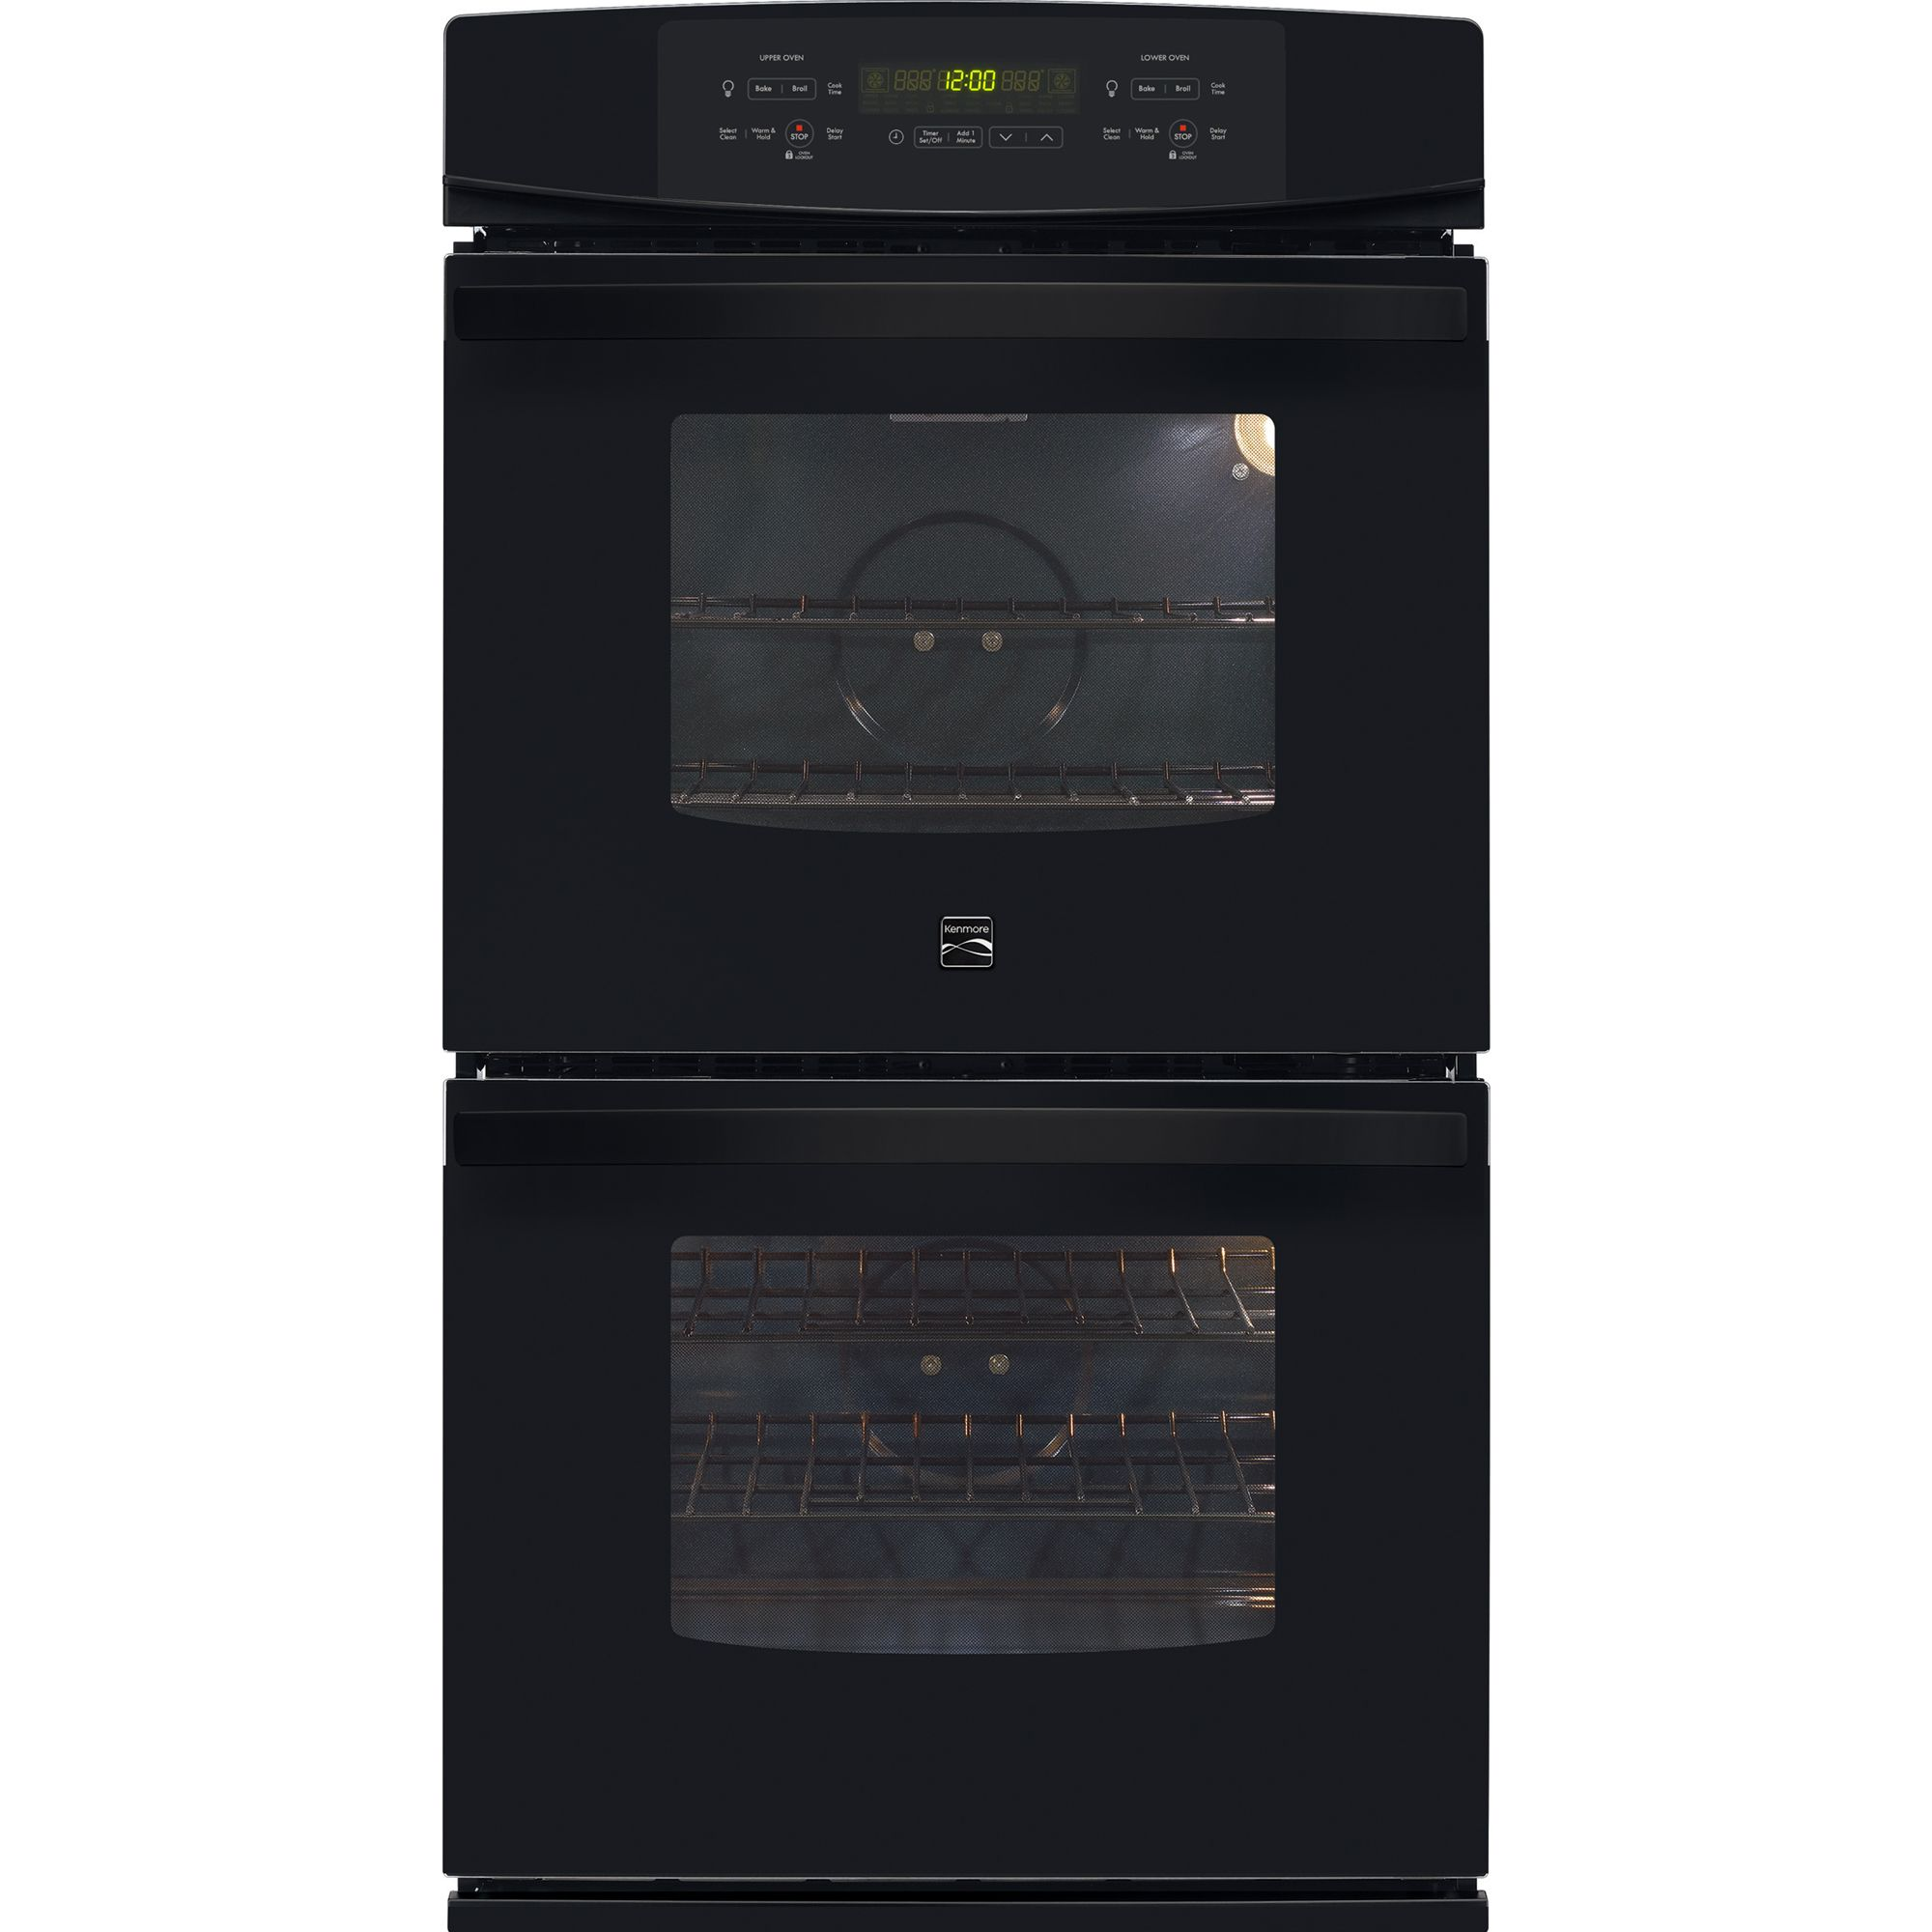 Kenmore 48769 27quot Self Cleaning Double Electric Wall Oven